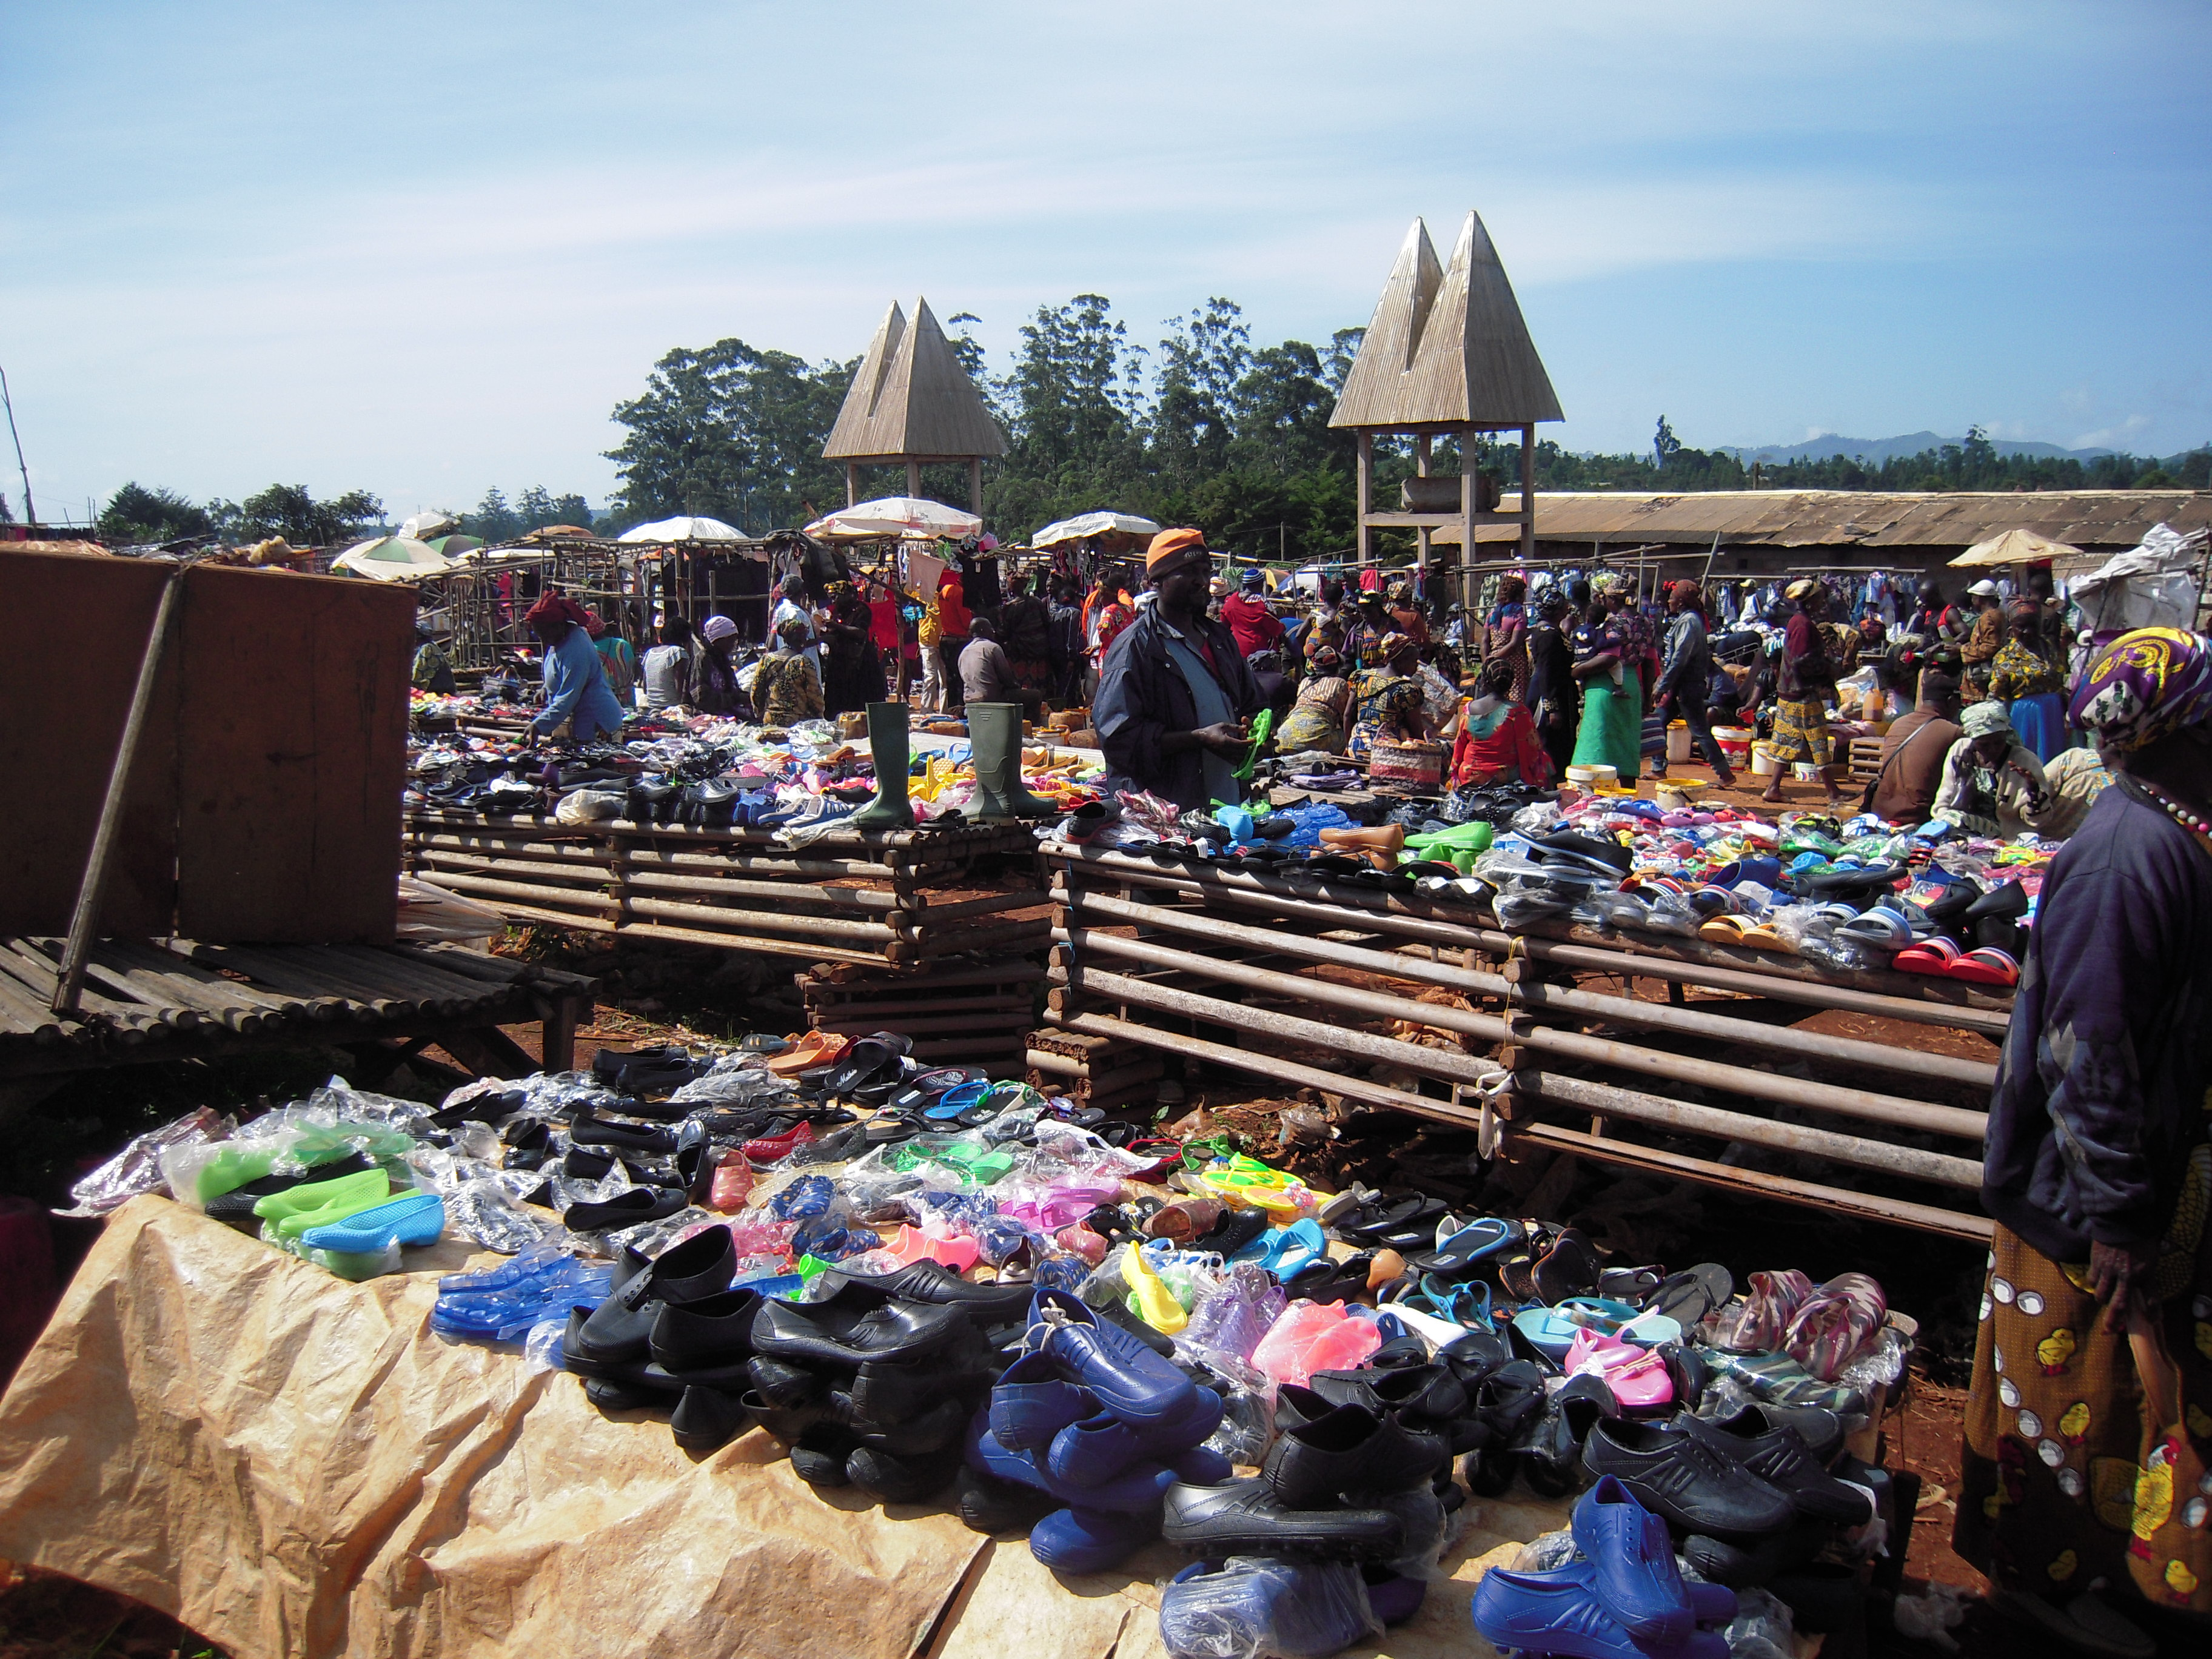 Chasing a Pair of Chinese Sandals: Markets and Trade Routes